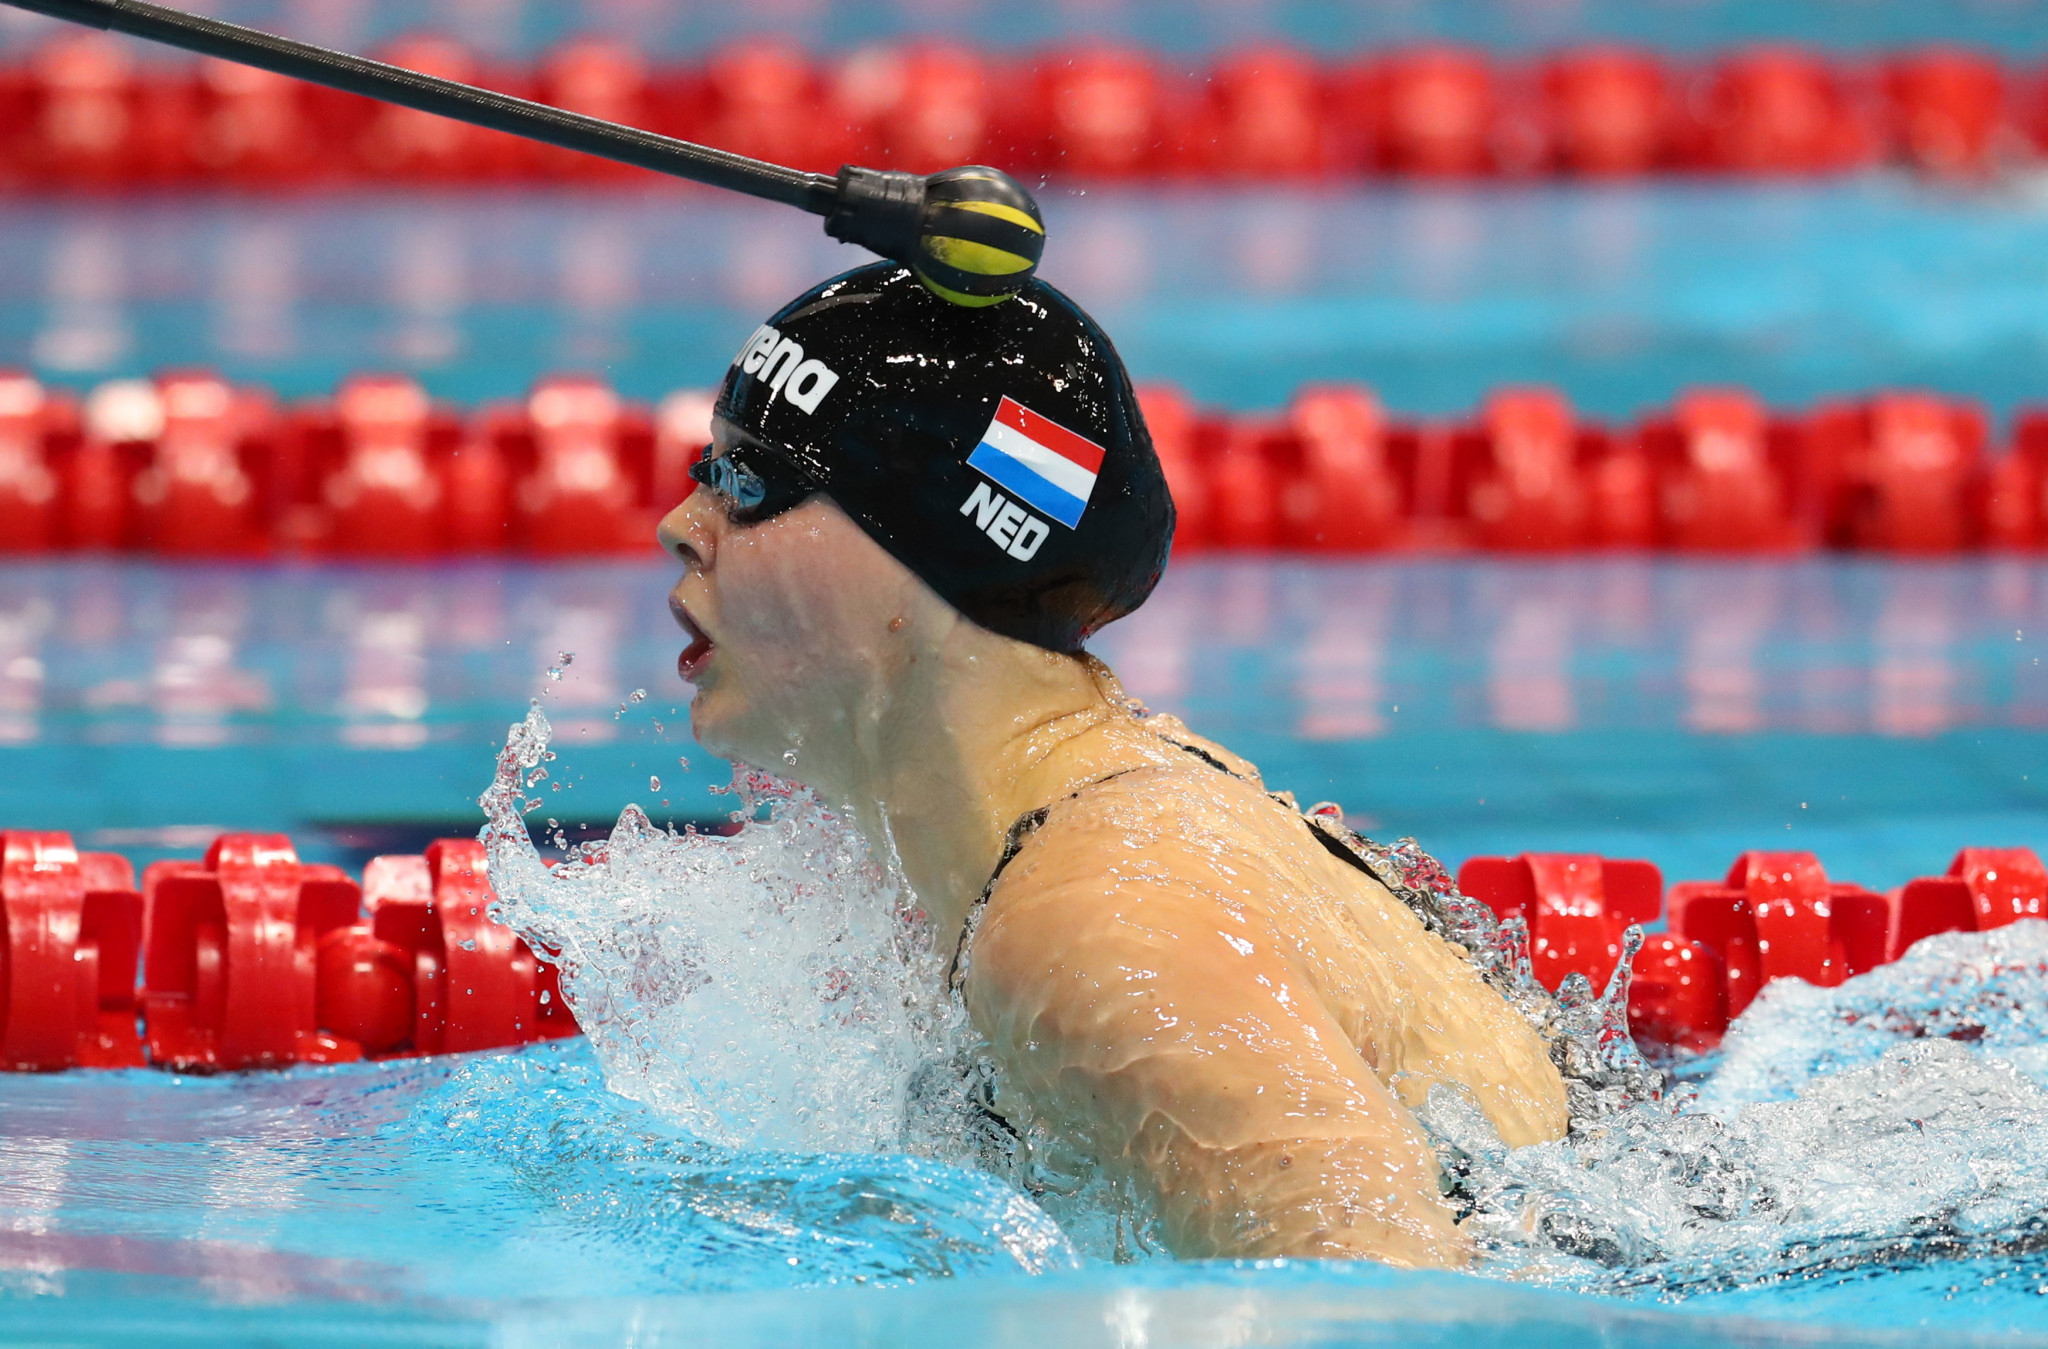 Liesette Bruinsma won five medals at the 2019 World Para Swimming Championships ©Getty Images